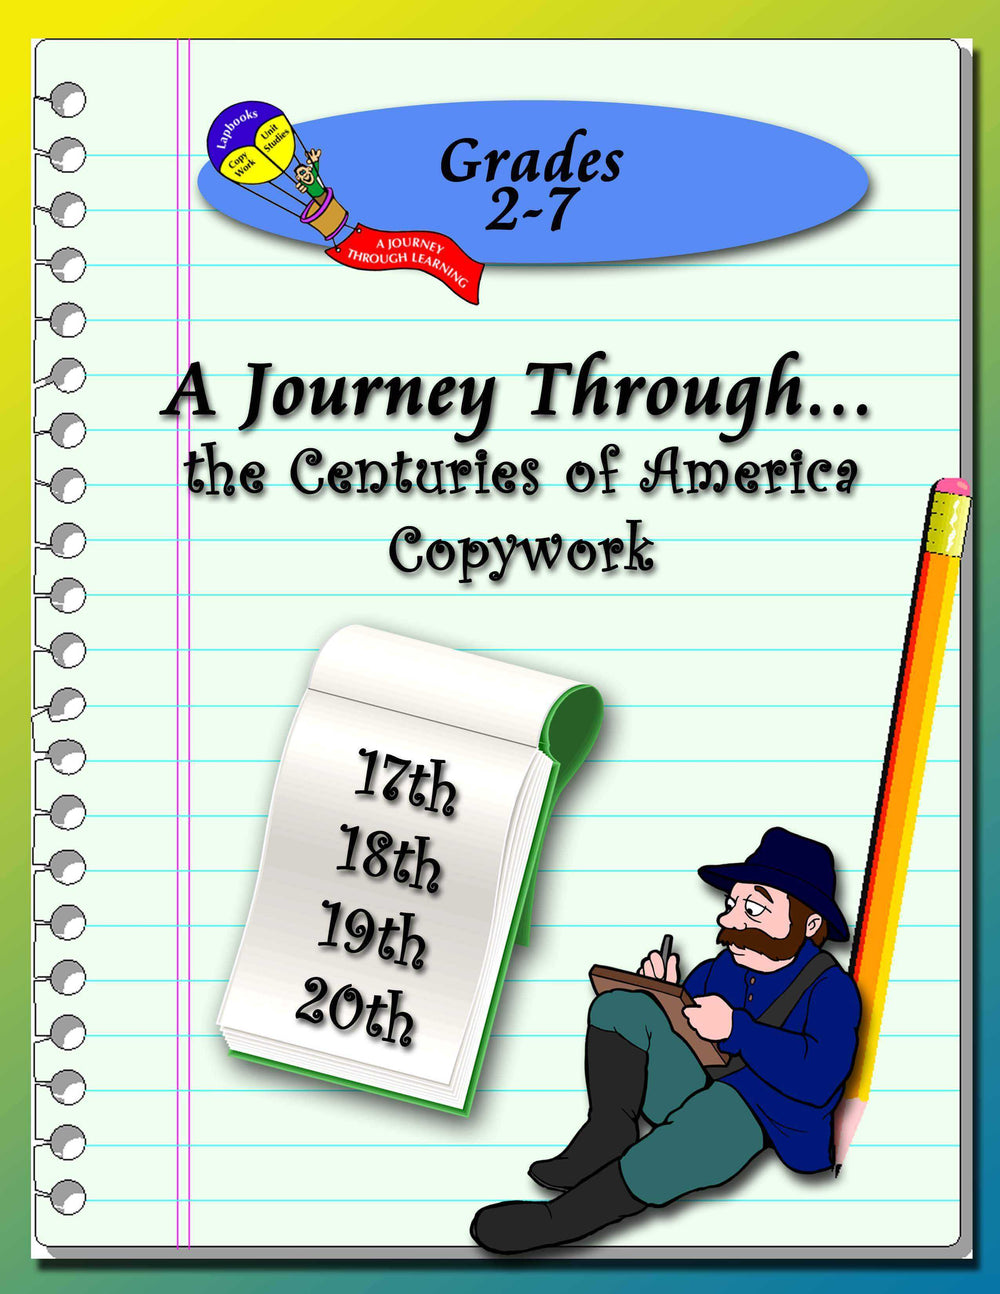 A Journey Through the Centuries of America (17th-20th)  Copywork (printed letters) - A Journey Through Learning Lapbooks